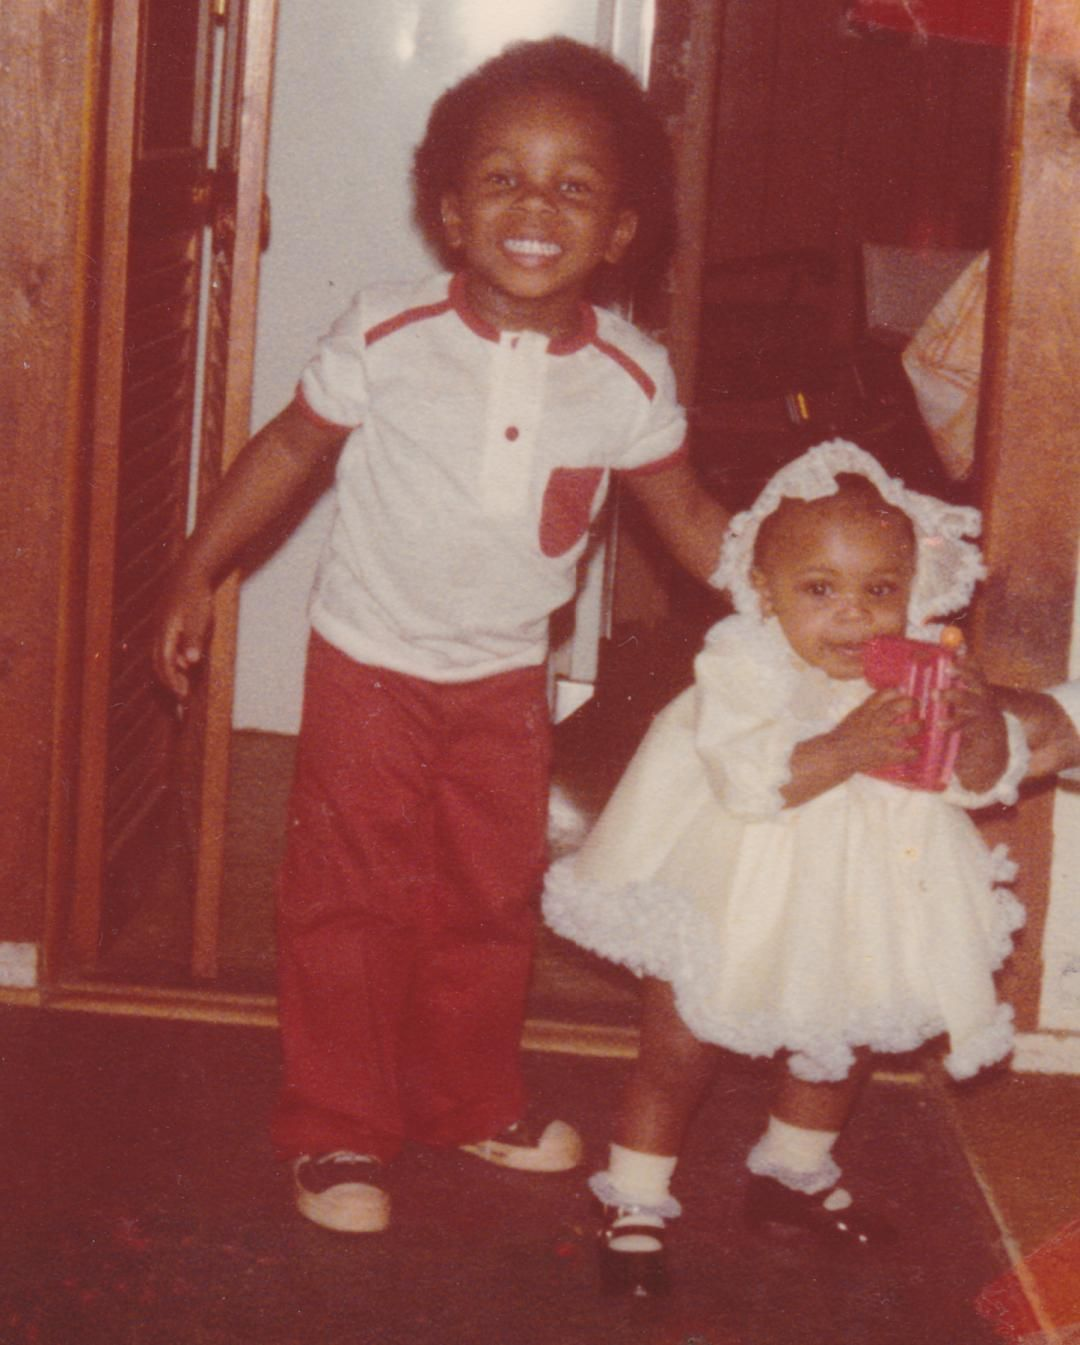 Me and my Lil cousin when she was a little under a year old...I think. Mama always had me looking sharp. Just think this was taken when Hip Hop was right around the corner....